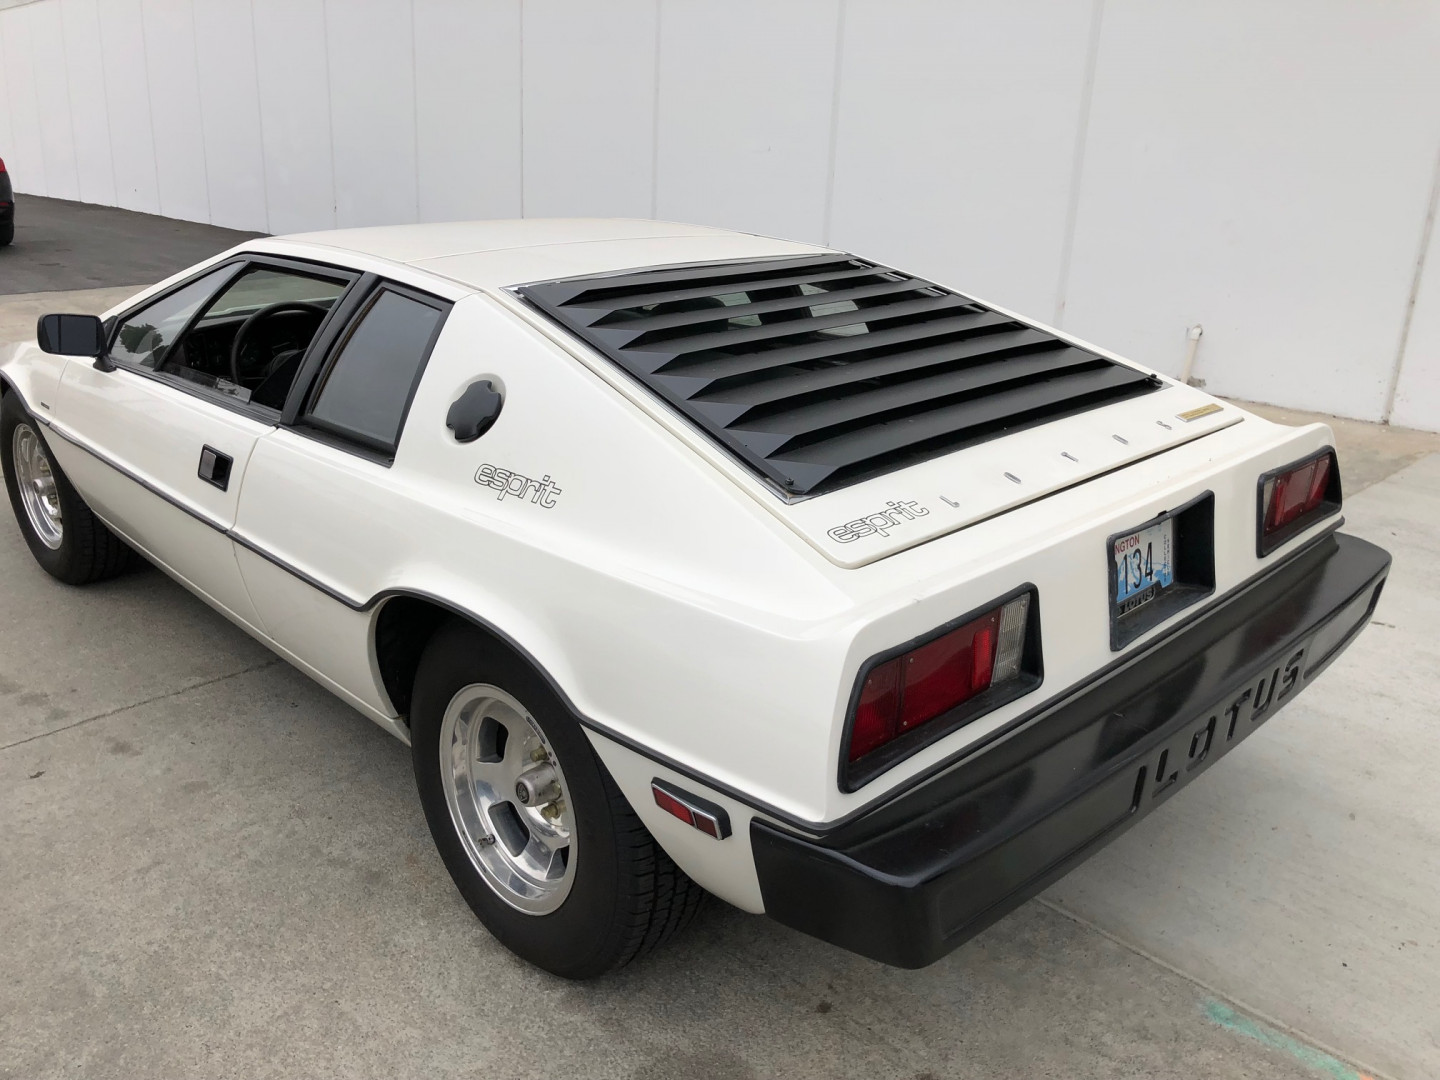 Lotus Esprit 1977 S1 2.0 160HP  läuft und fährt wie James Bonds Auto - MBB Collection